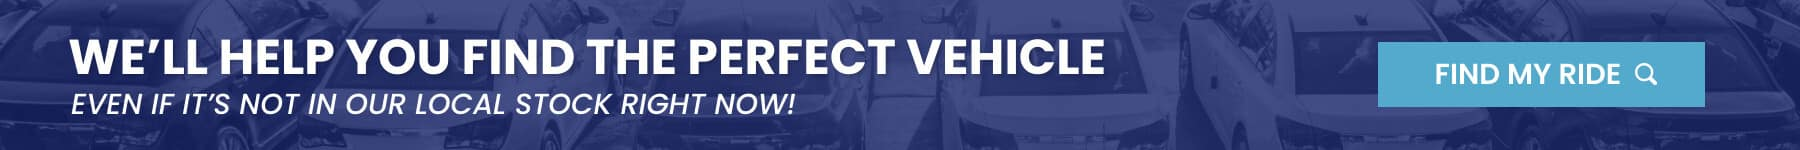 Find Your Perfect Vehicle